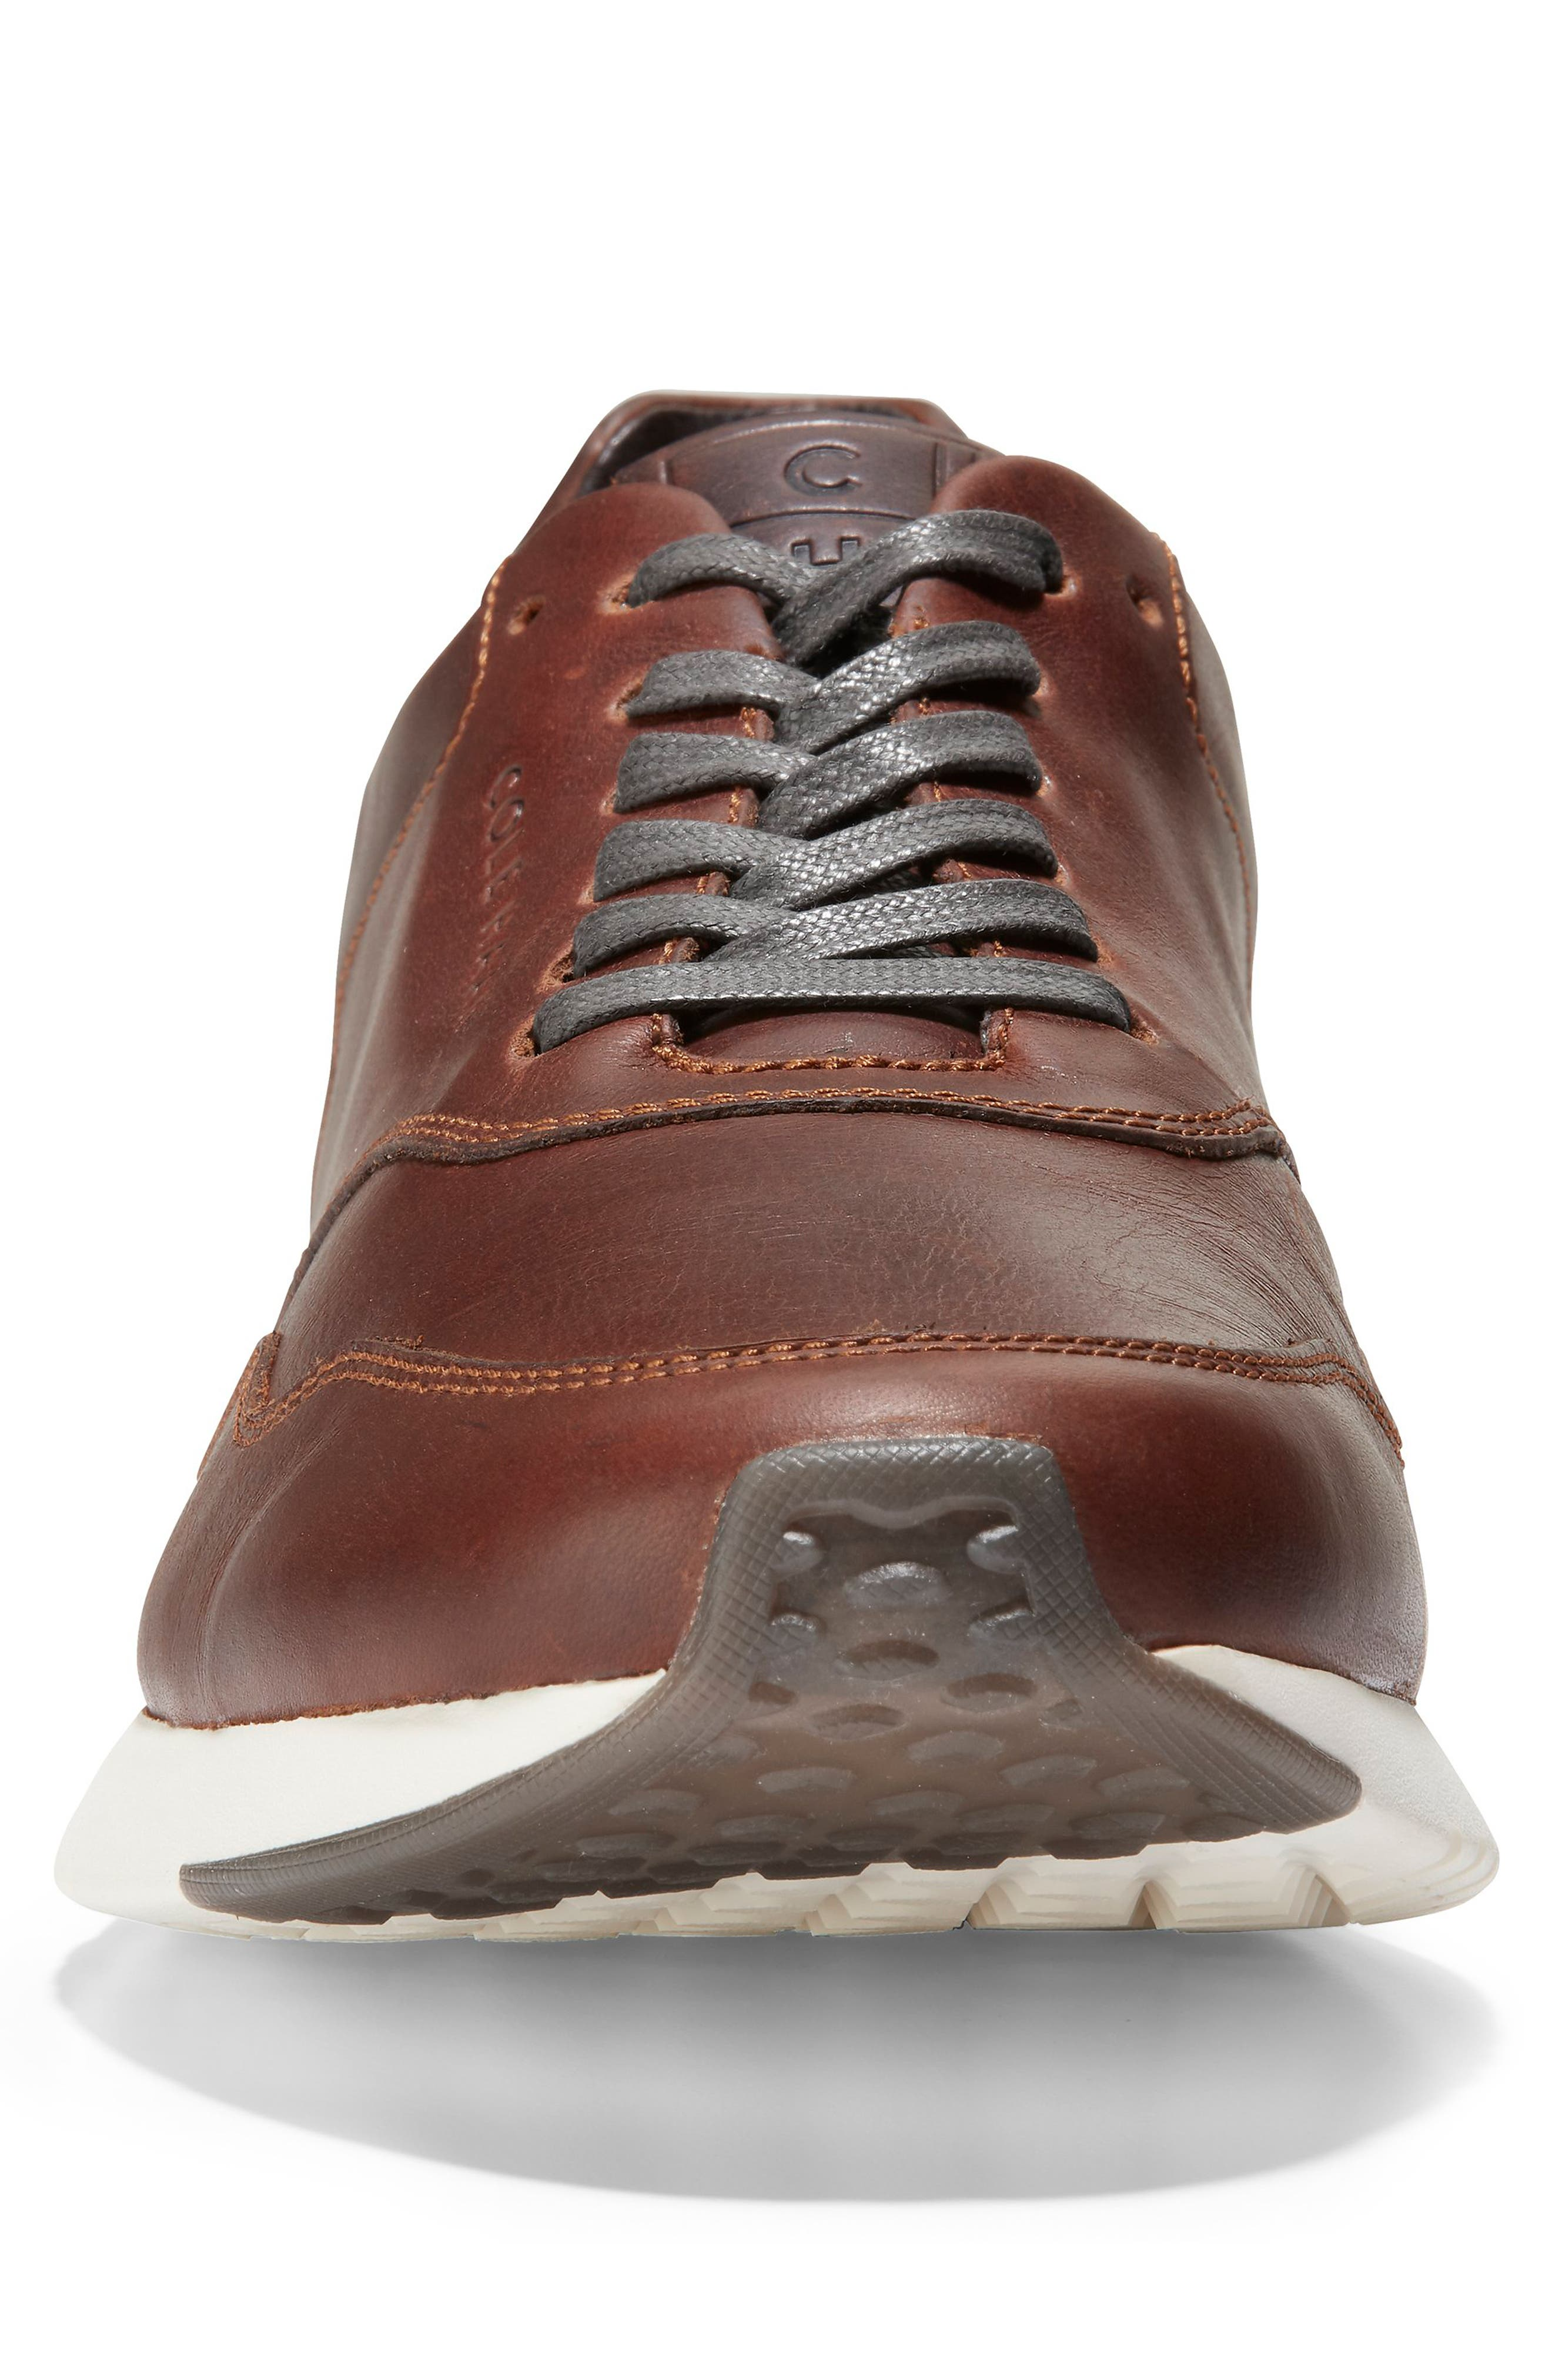 GrandPro Sneaker,                             Alternate thumbnail 4, color,                             MESQUITE/ COFFEE LEATHER